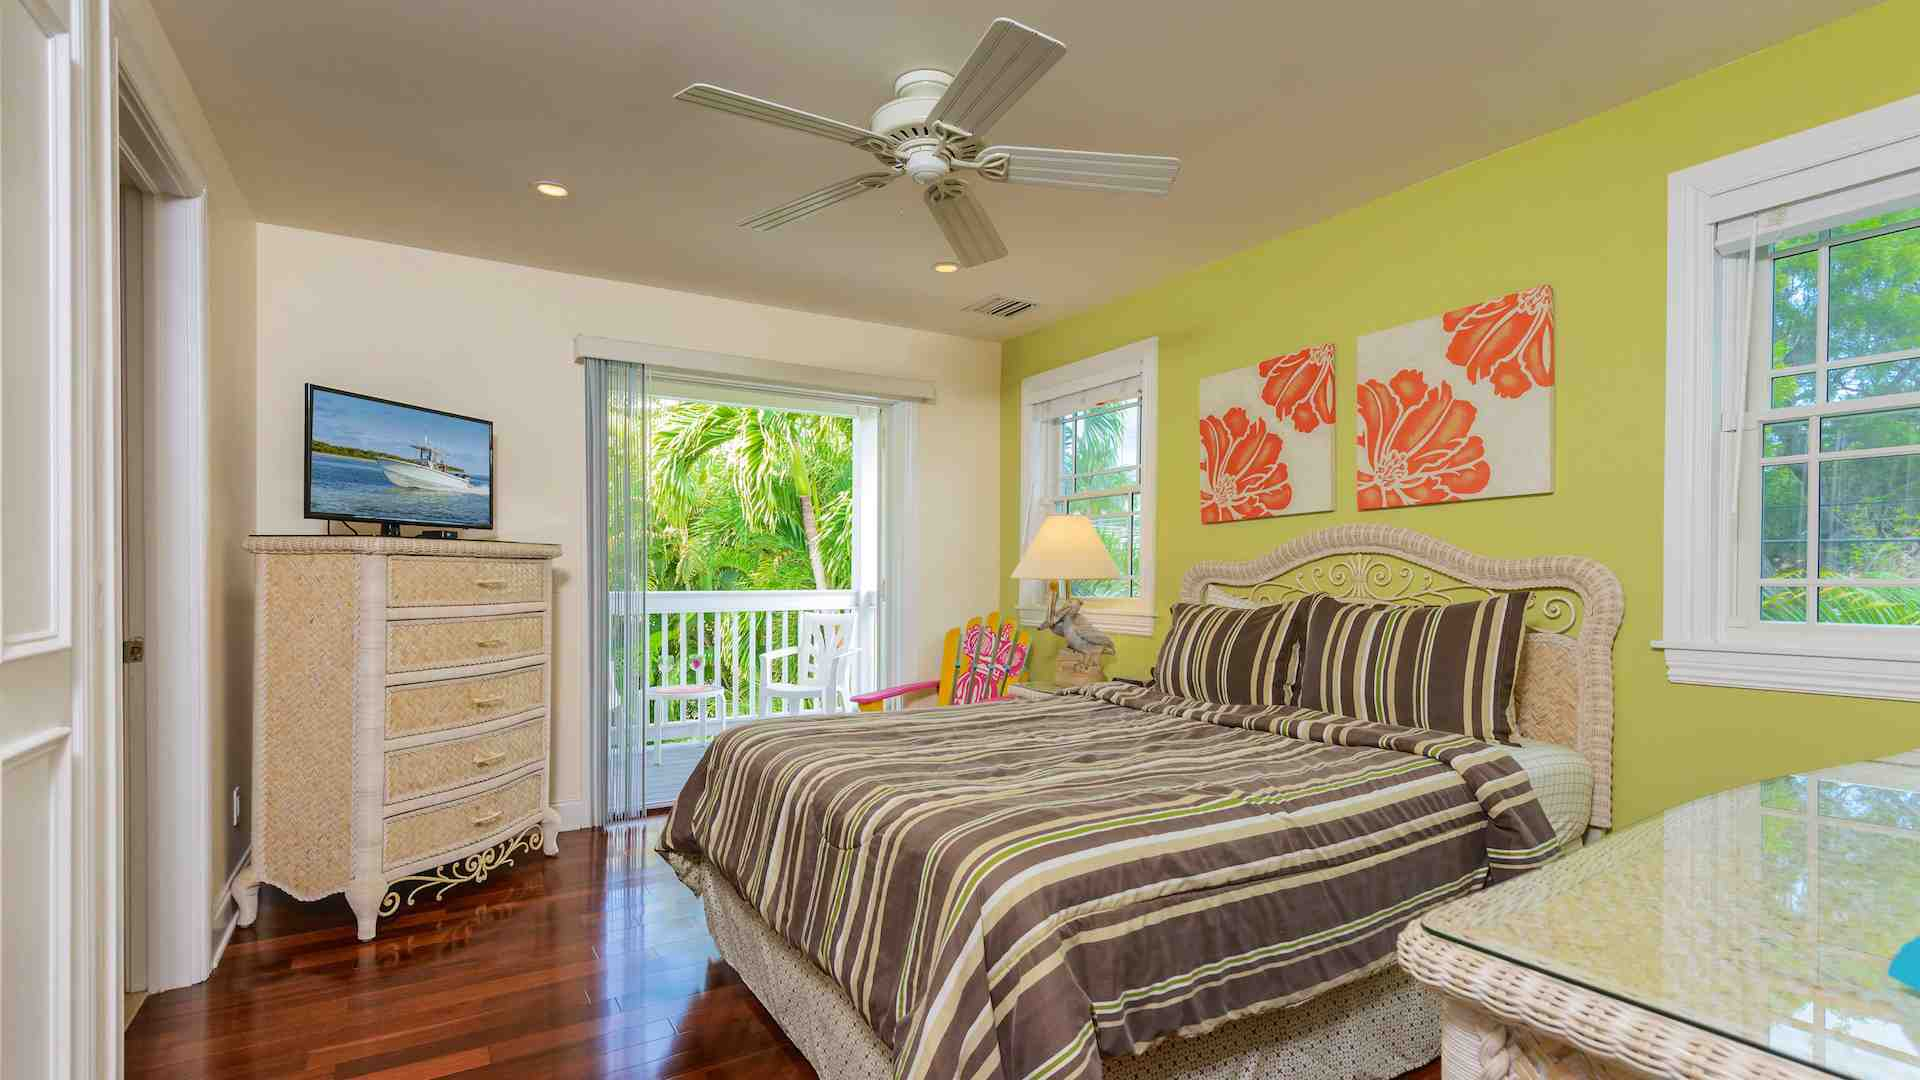 The second bedroom has a queen sized bed, flat screen TV, ceiling fan, balcony...